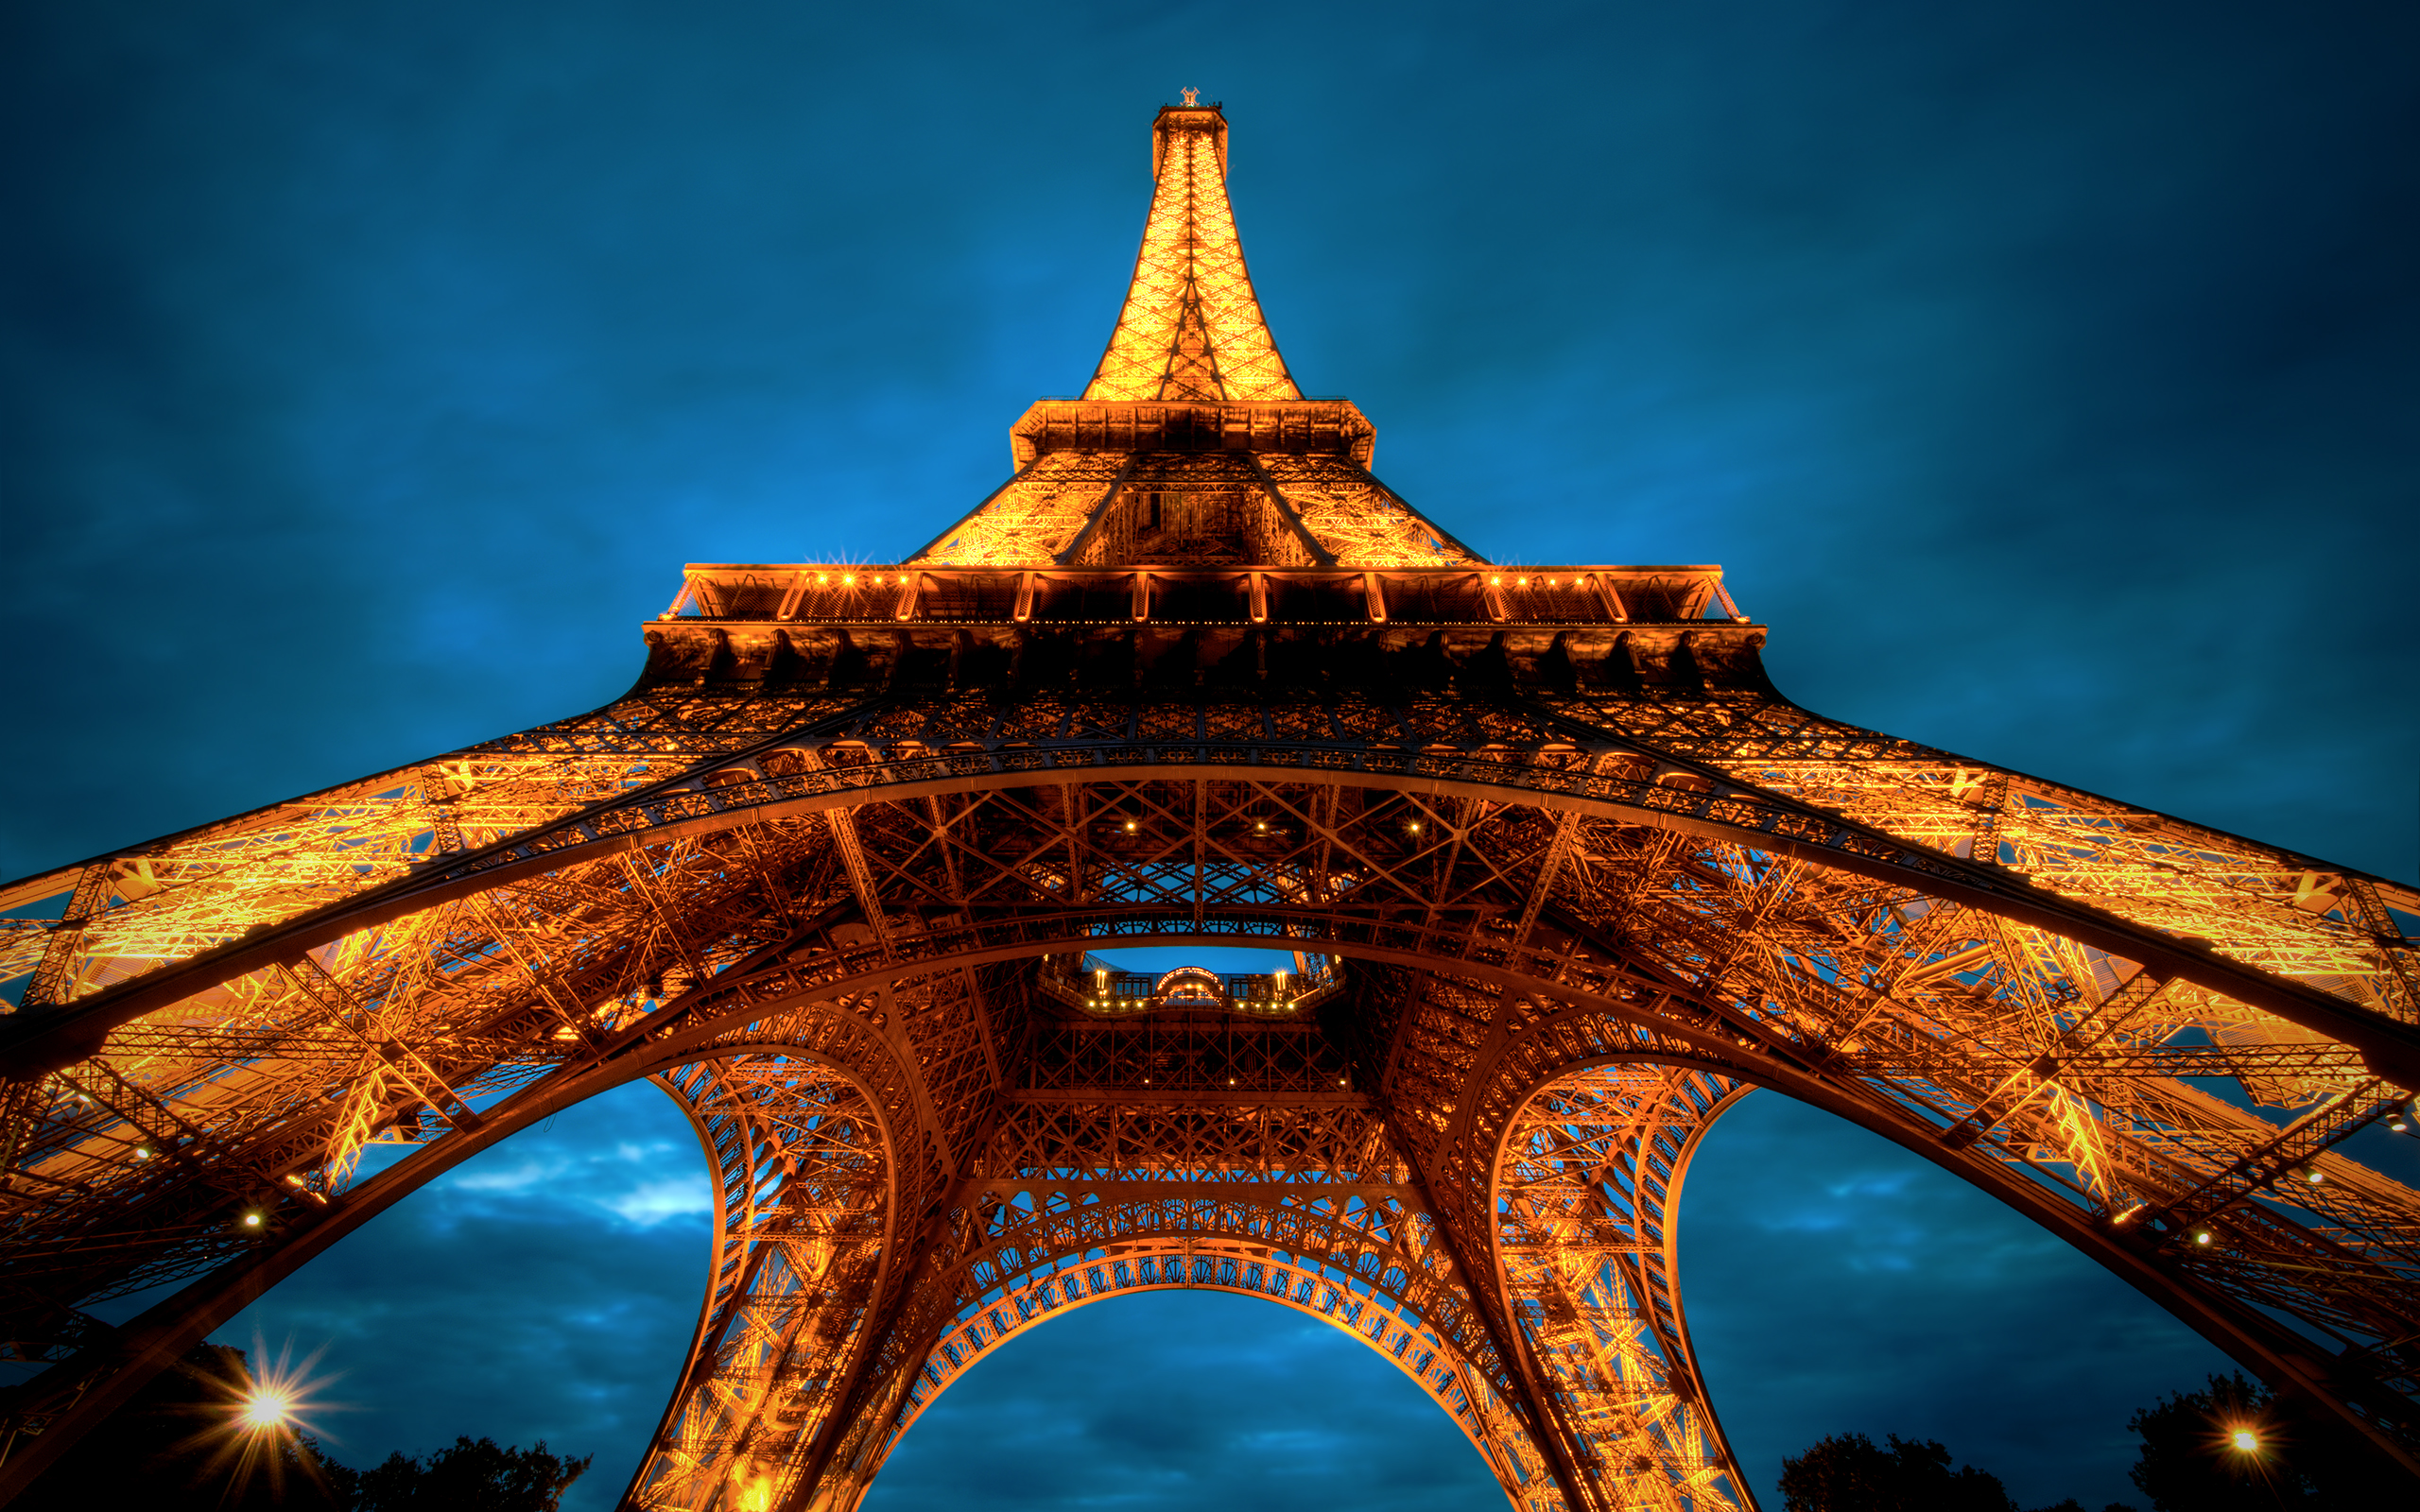 Eiffel Tower Paris HDR